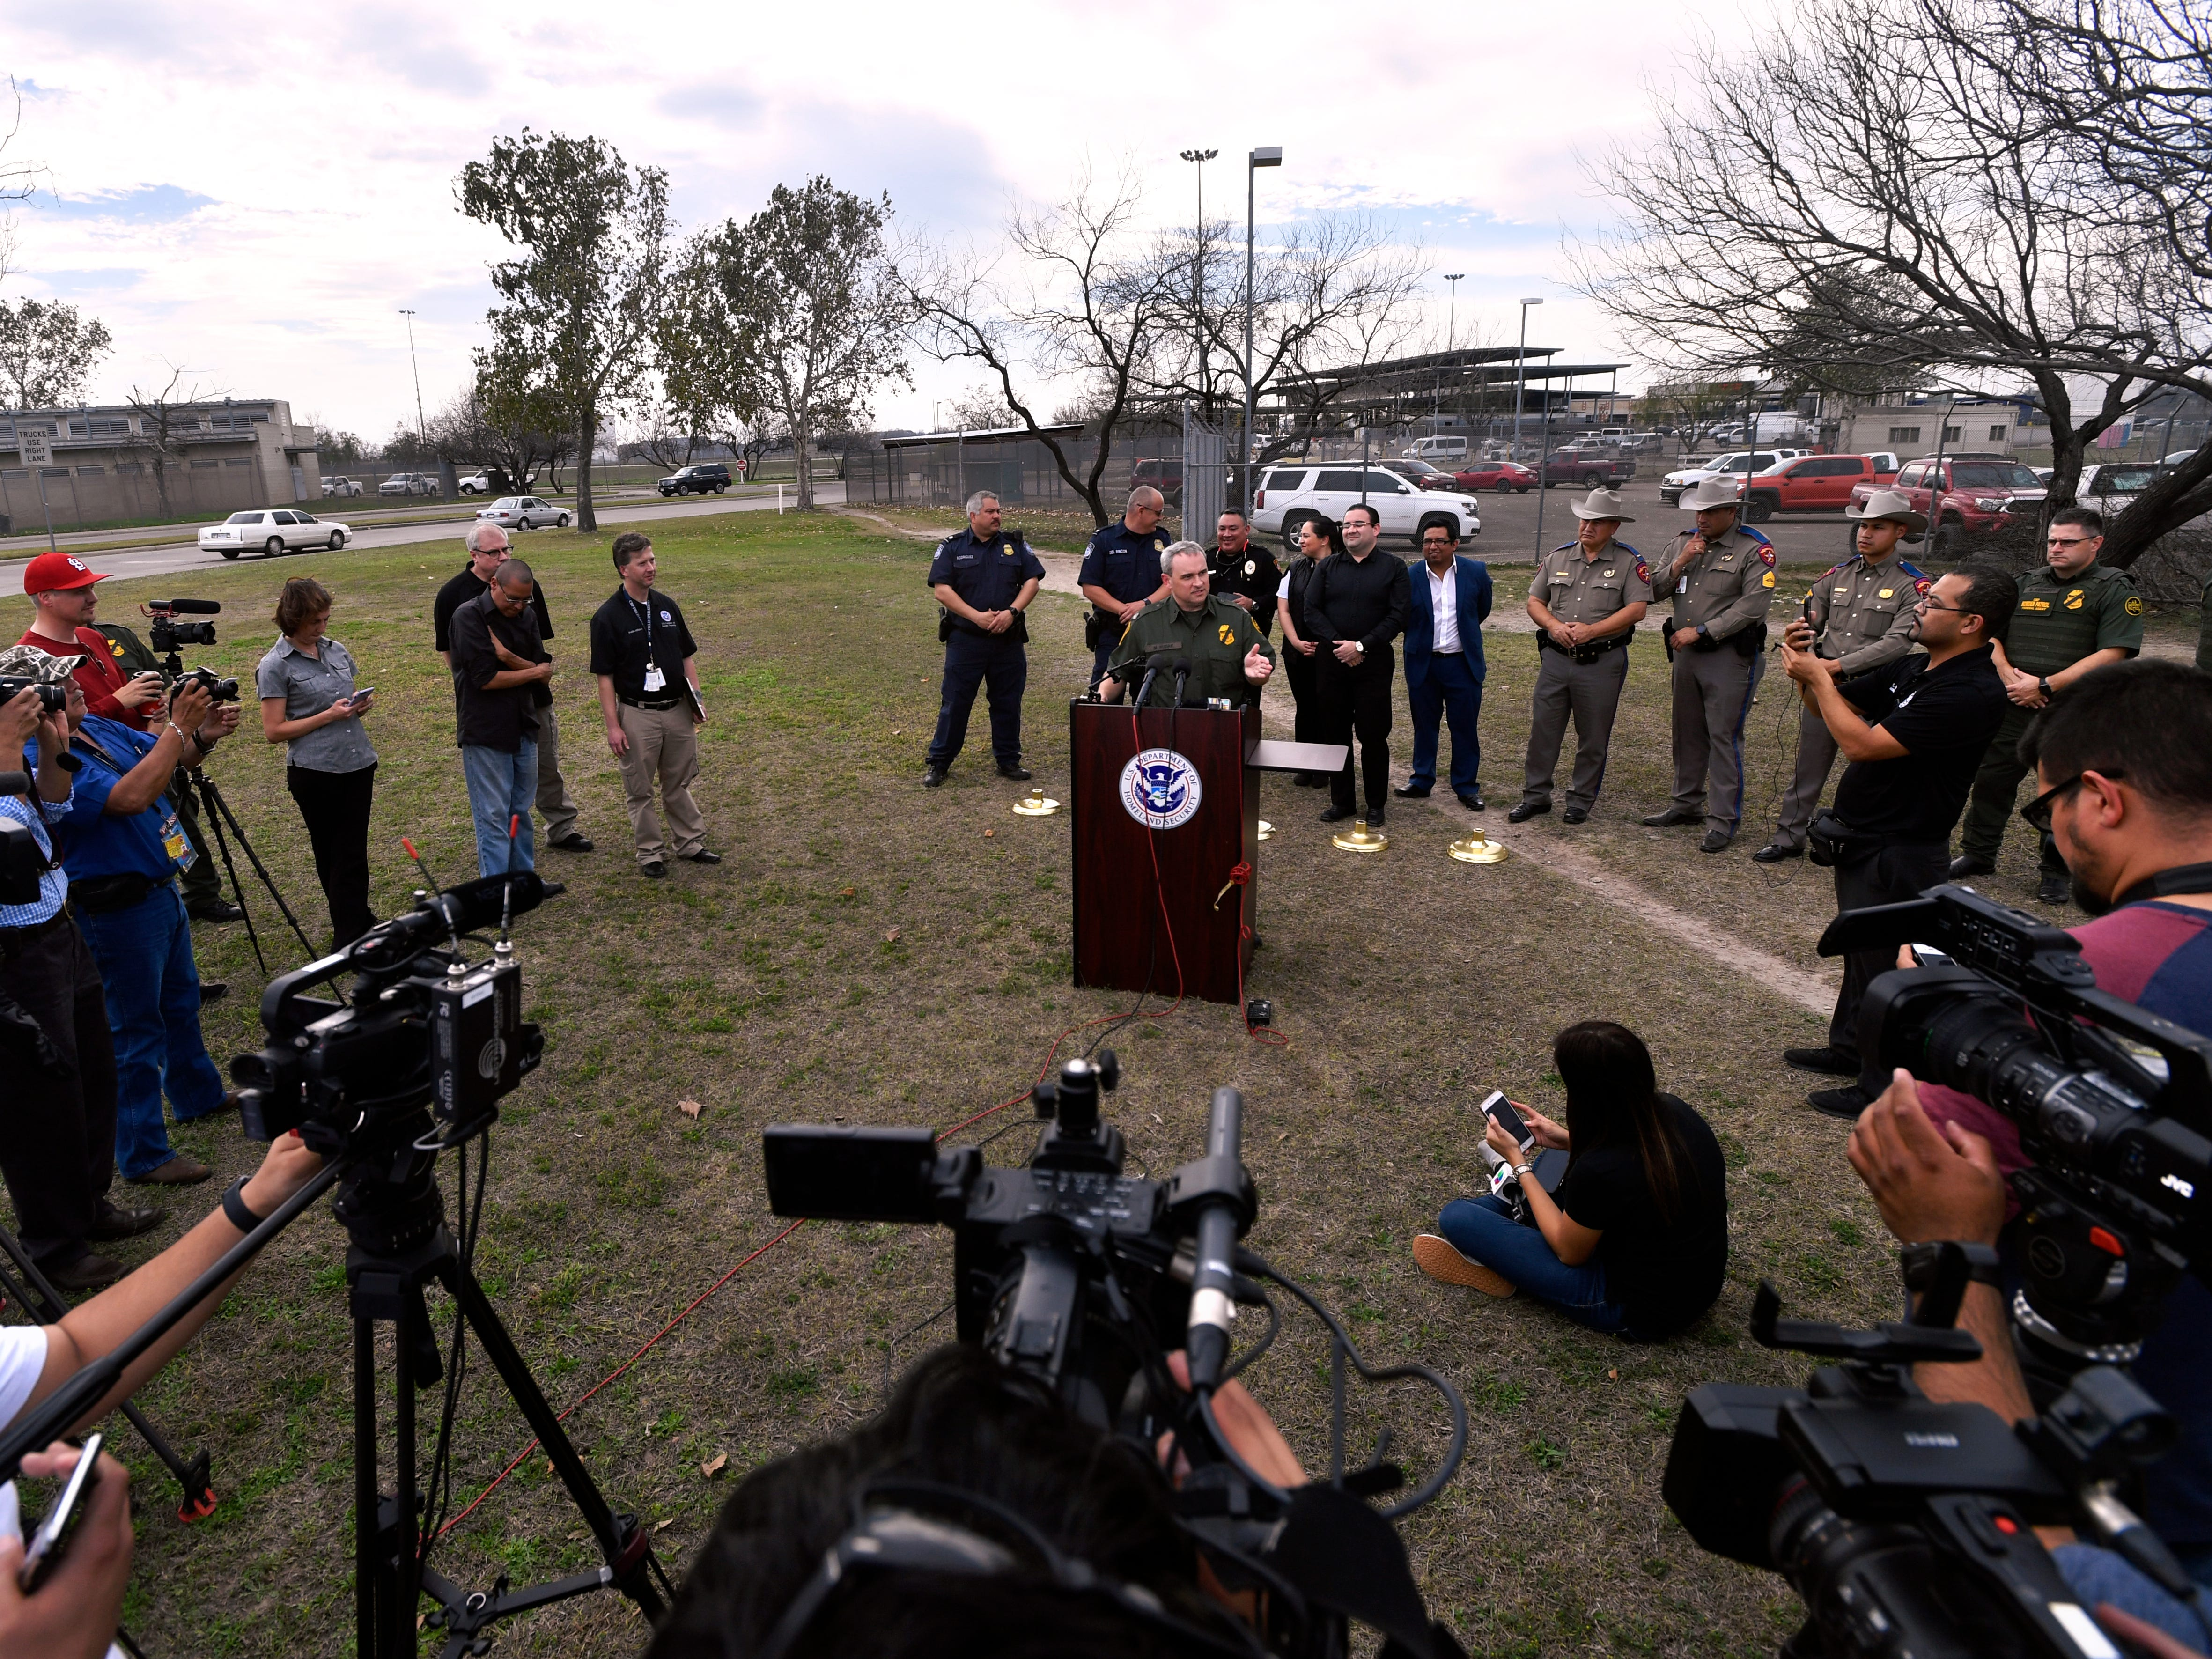 Chief Patrol Agent Matthew J. Hudak, Del Rio Sector Border Patrol U.S. Customs and Border Protection, speaks to reporters during a press conference Wednesday Feb. 6, 2019 in Eagle Pass. Officials from CPB, the City of Eagle Pass, and the Port of Entry held an outdoor briefing not far from the Rio Grande where a large migrant caravan has arrived on the other side of the river in Piedras Negras.